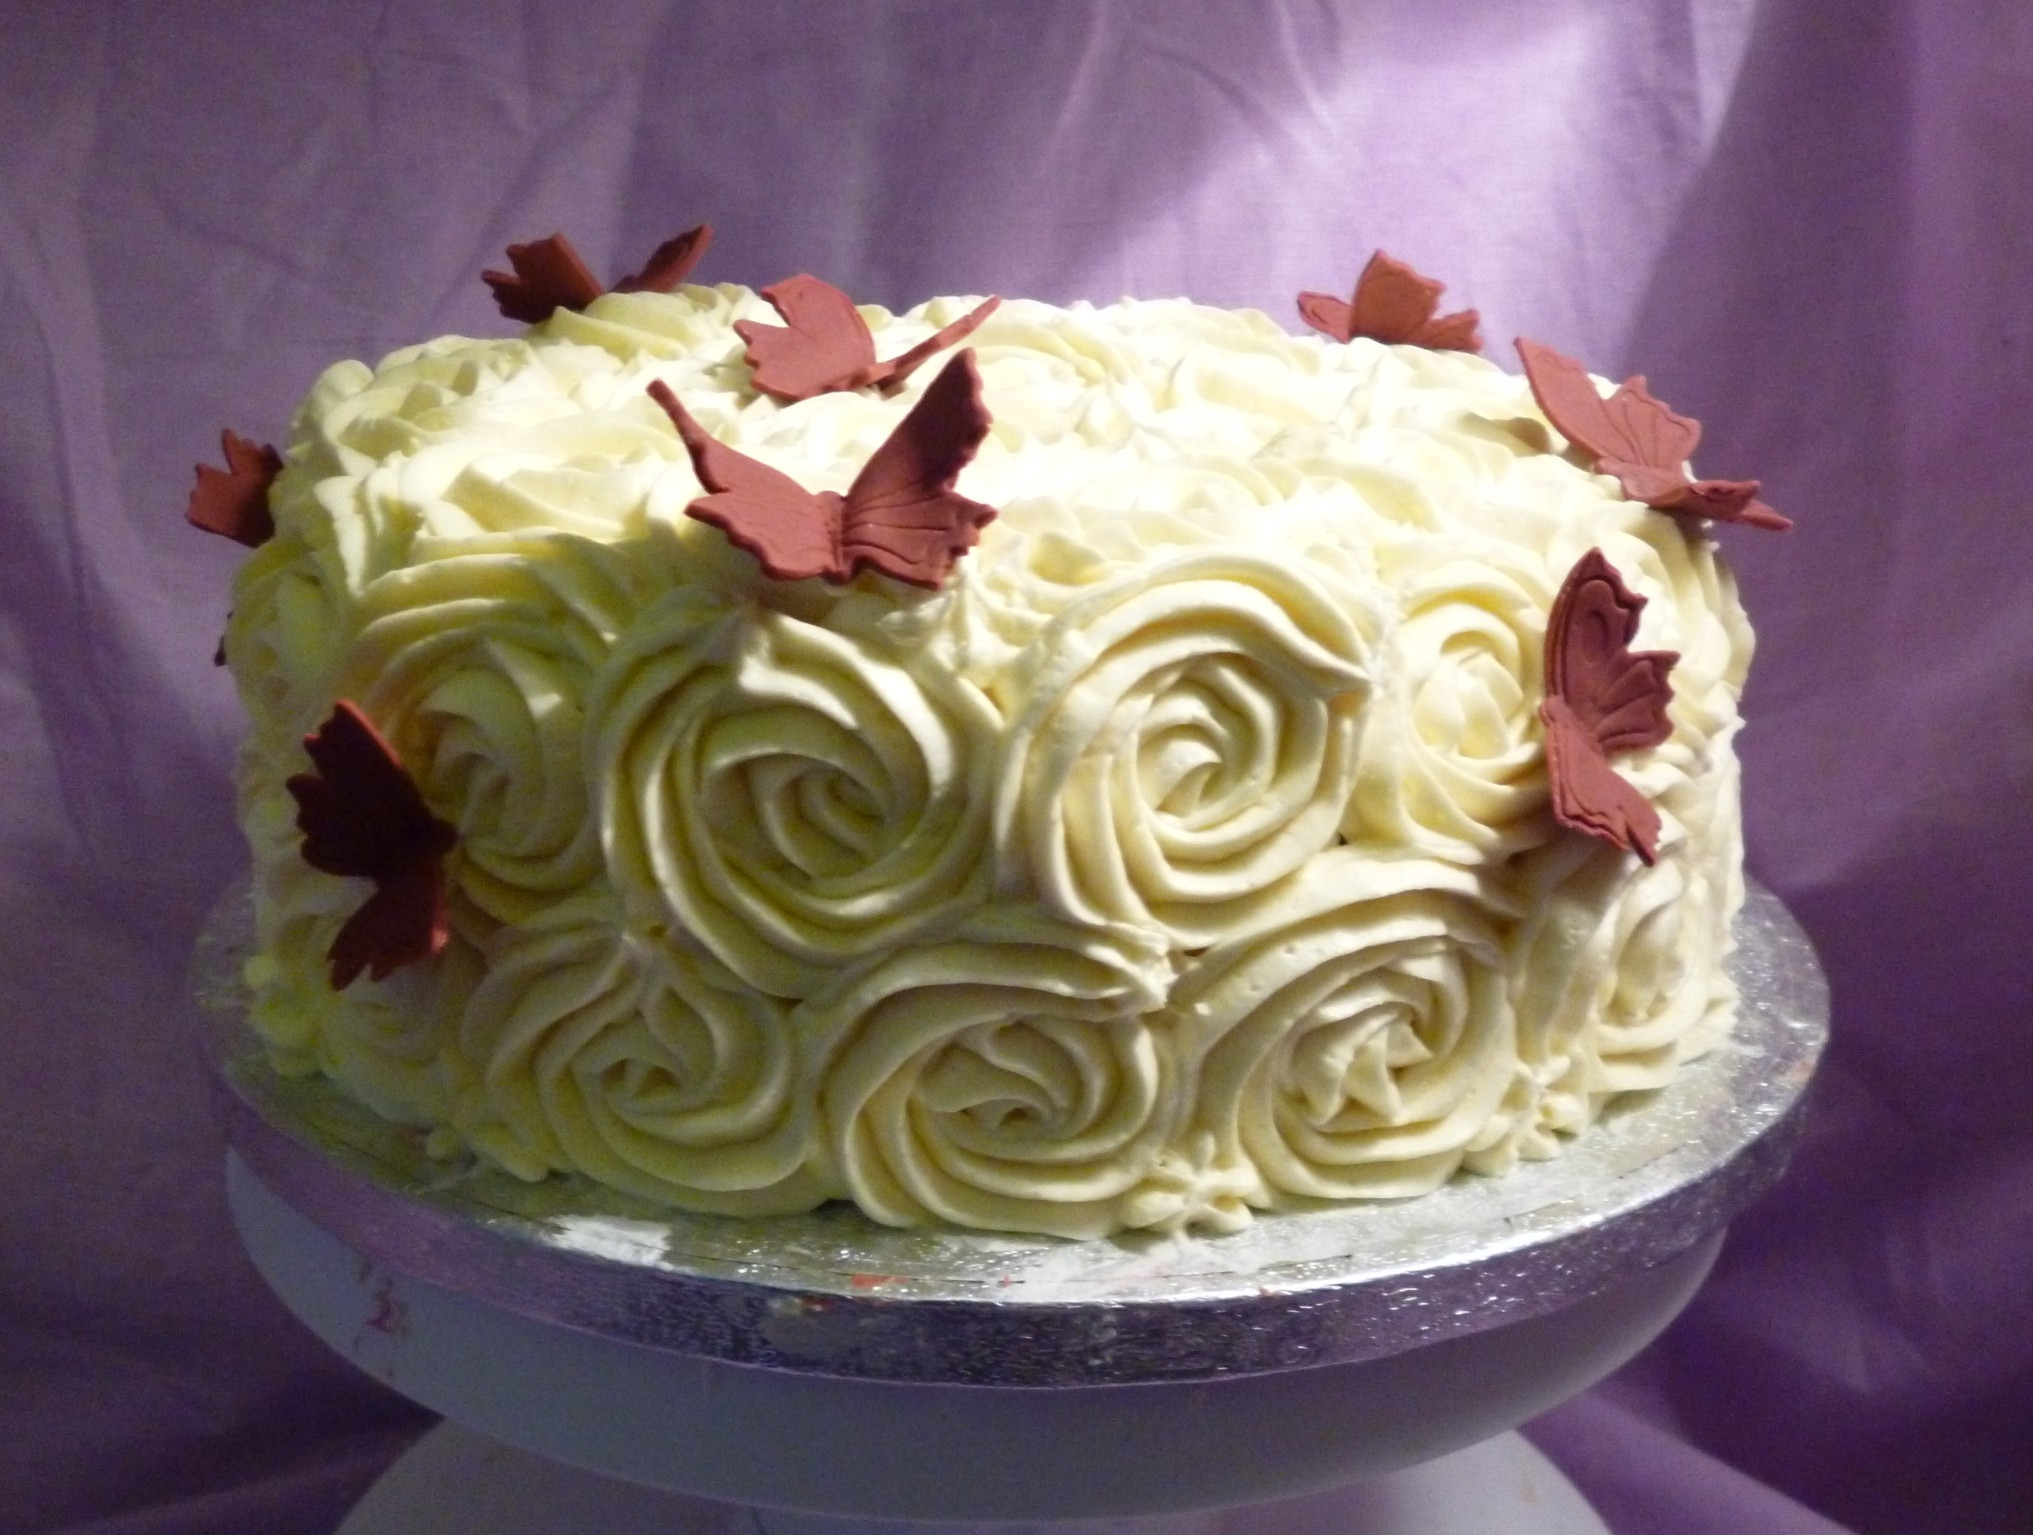 Best ideas about Rose Birthday Cake . Save or Pin Buttercream Roses Birthday Cake CakeCentral Now.